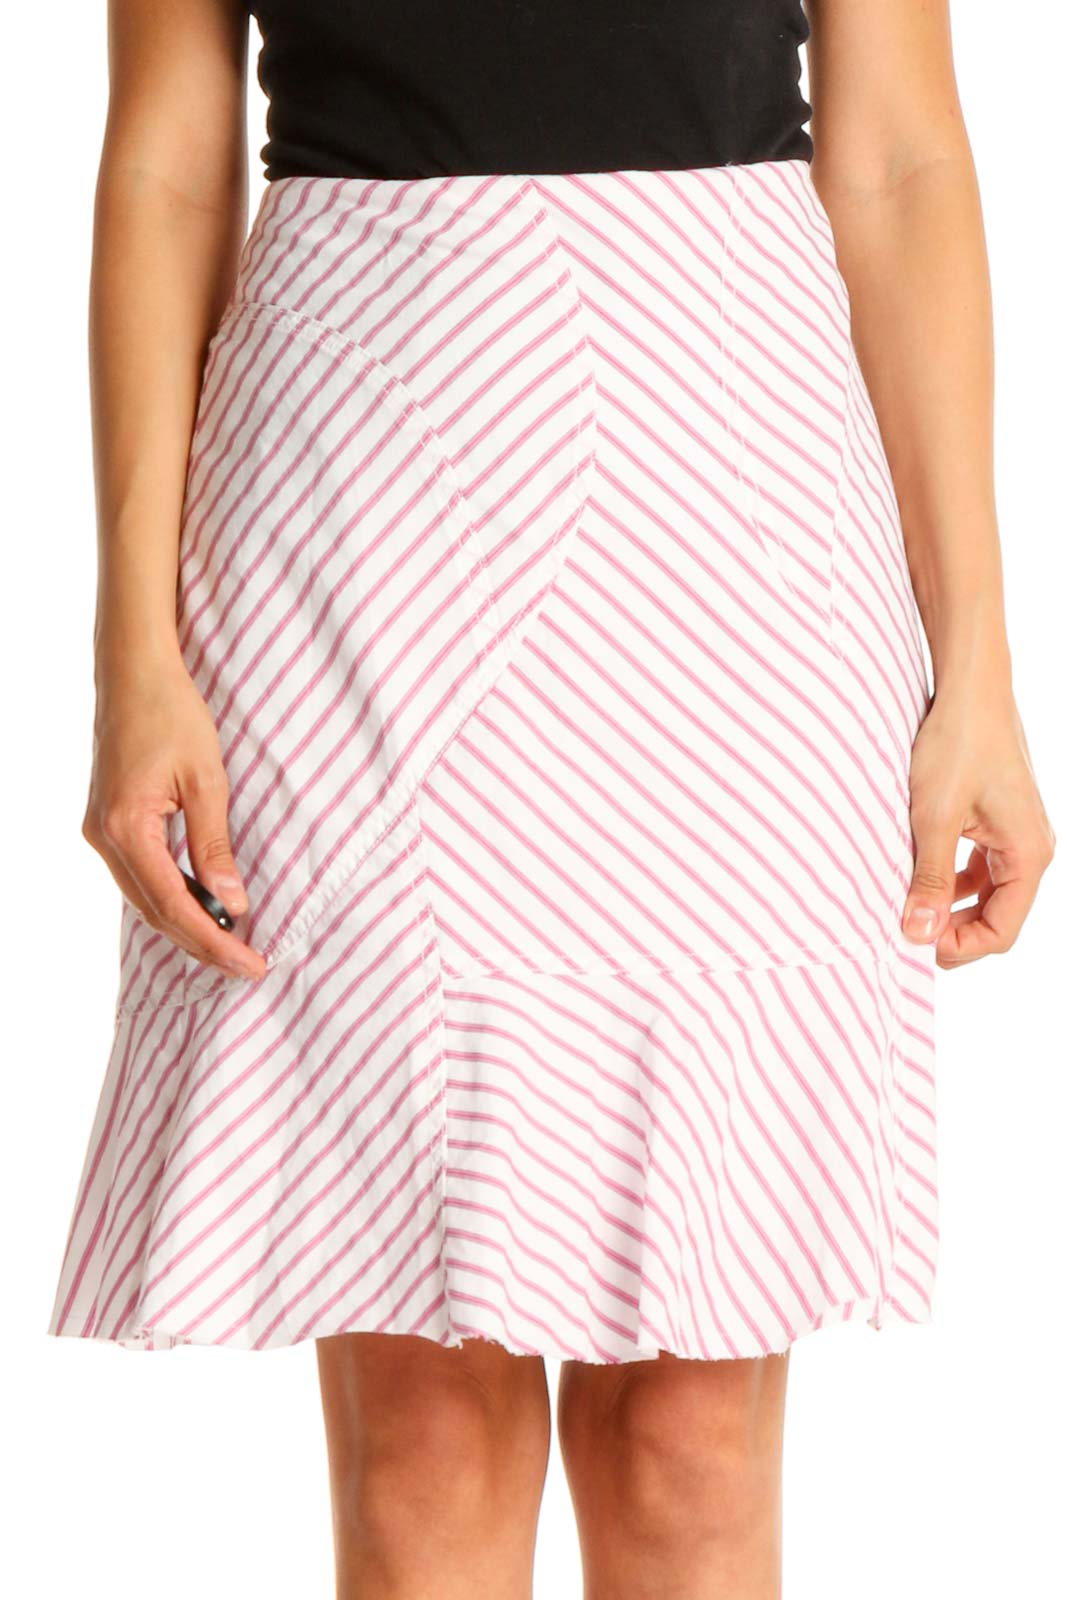 White Striped Brunch A-Line Skirt Front